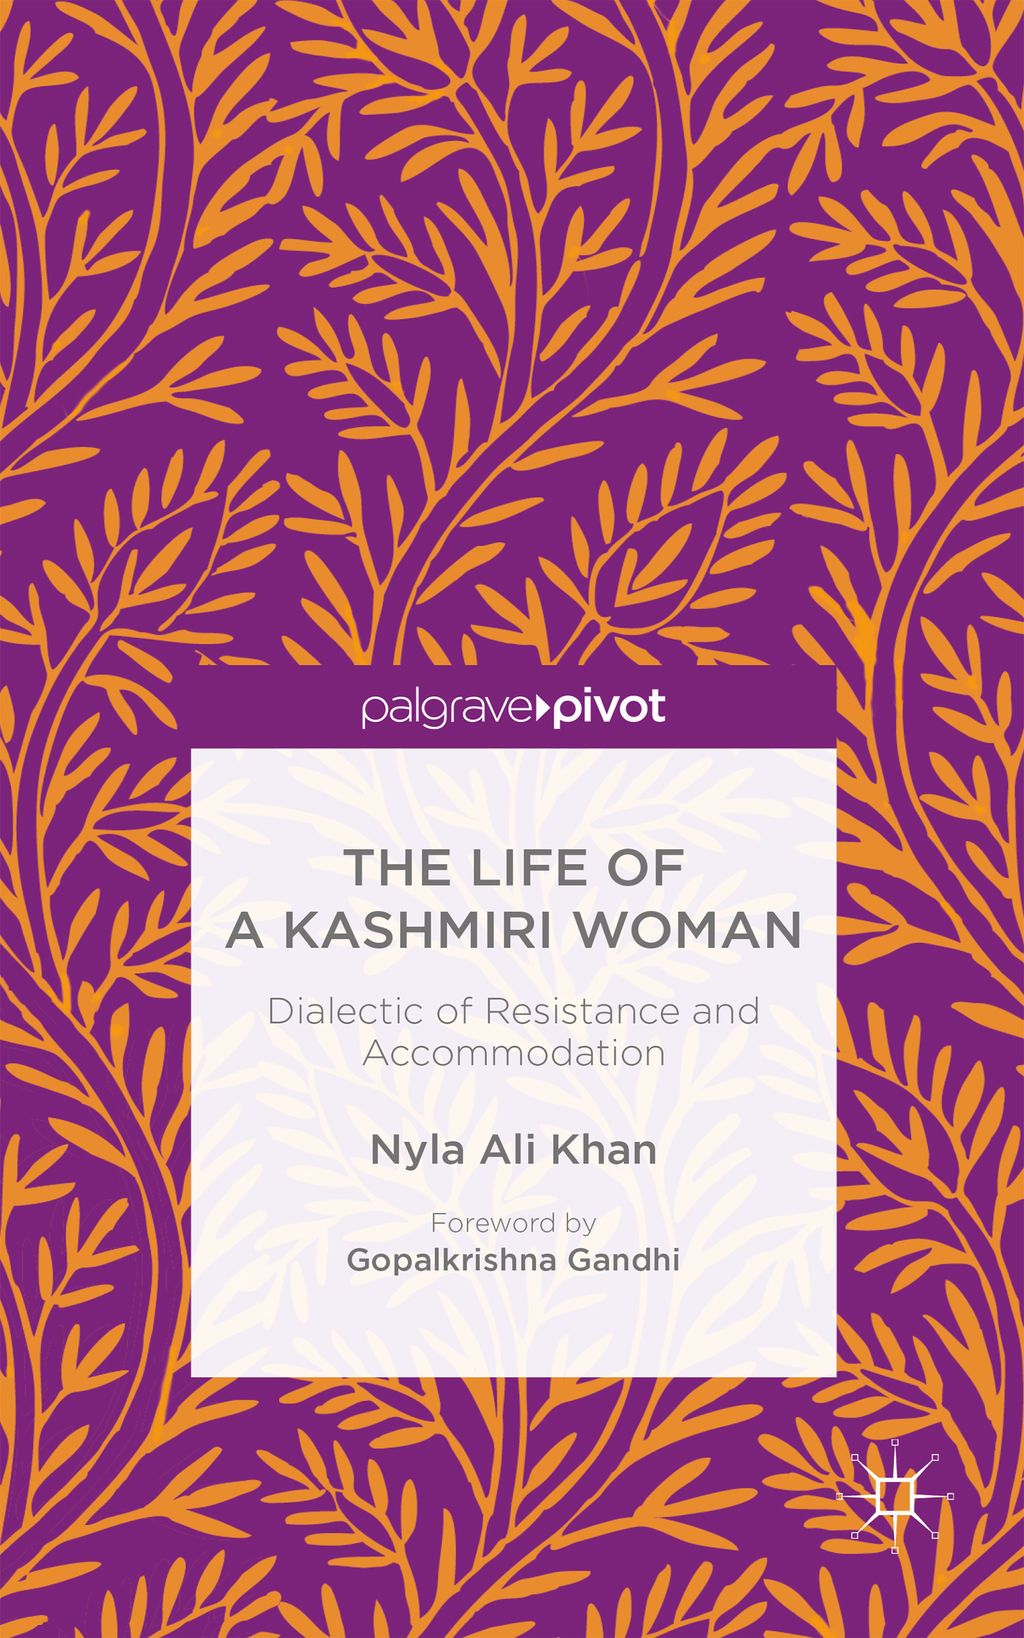 The Life of a Kashmiri Woman Dialectic of Resistance and Accommodation